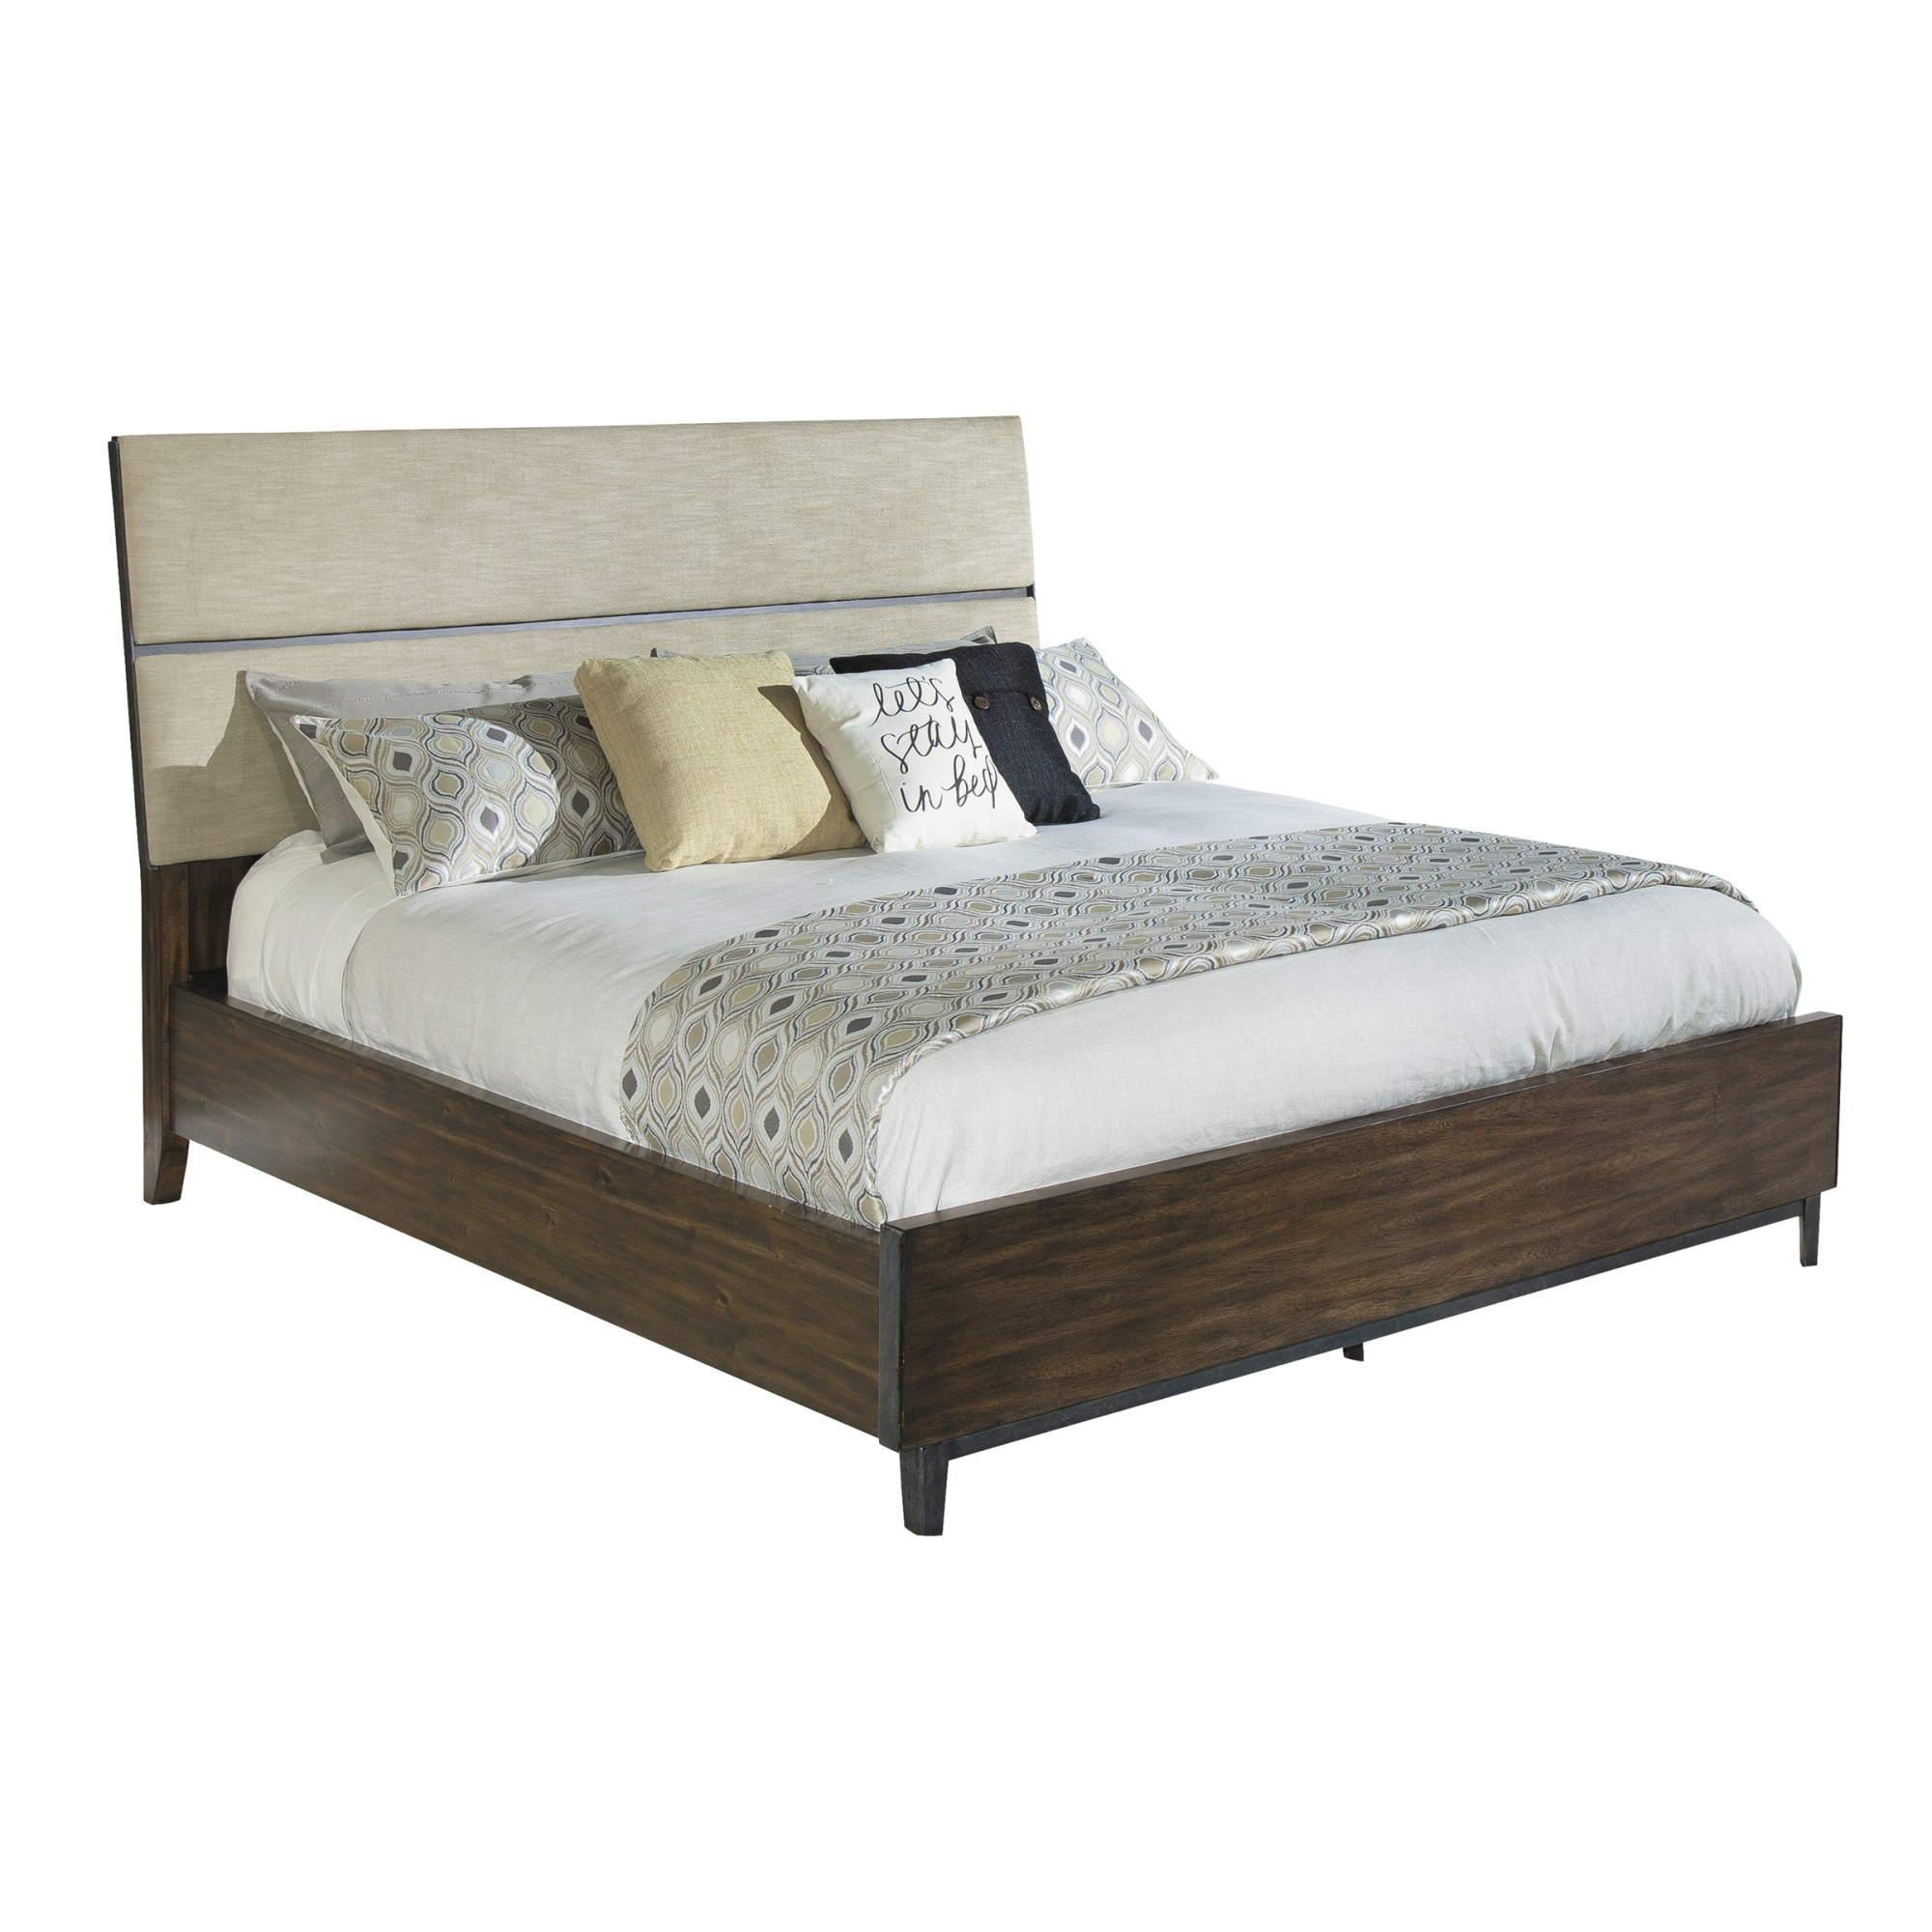 Image for 2-4367 Monterey Point Queen Upholstered Planked Panel Bed from Hekman Official Website